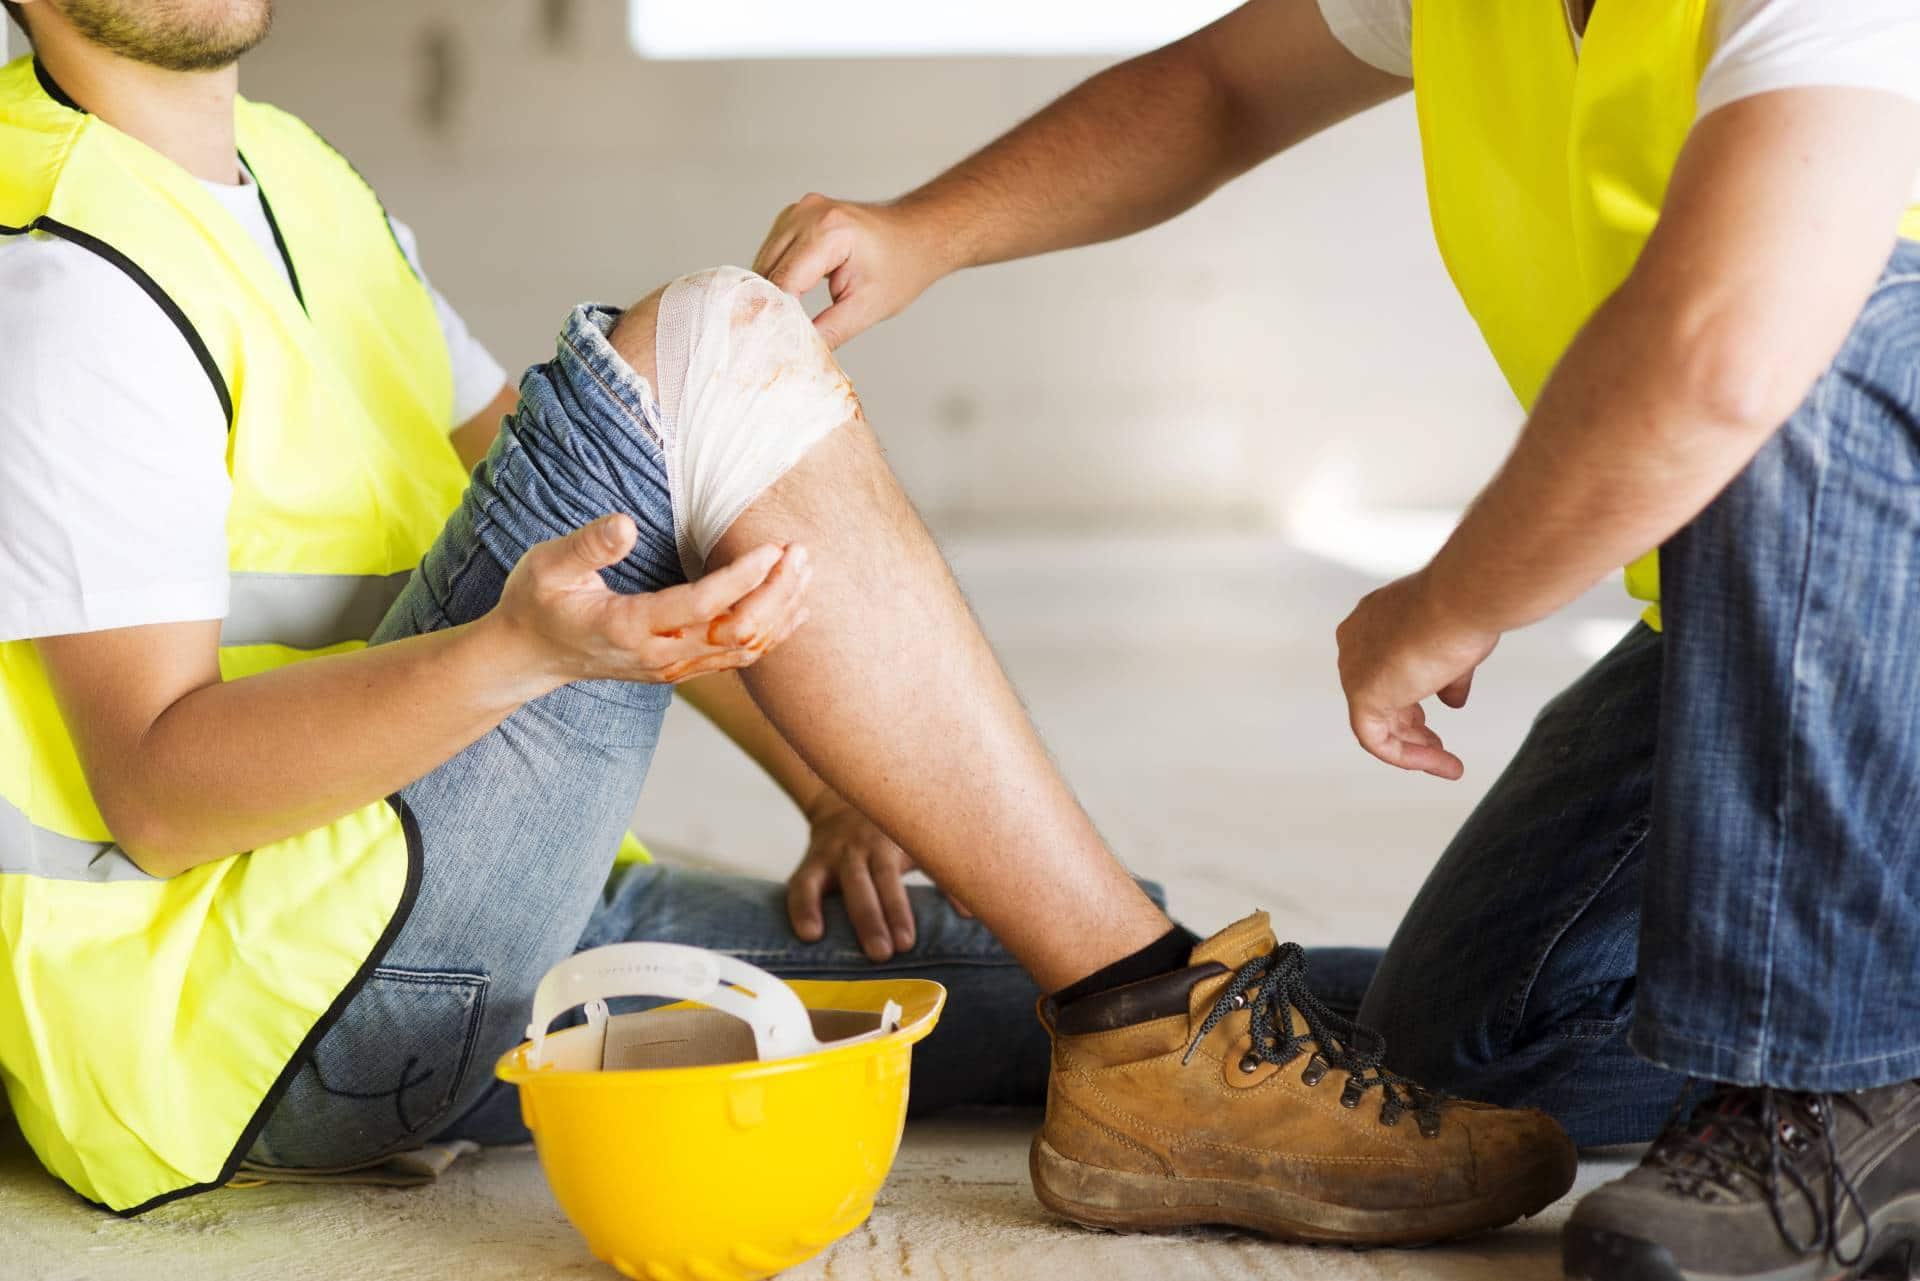 Injured on the job? Schedule a free consultation with the Angell Law Firm.